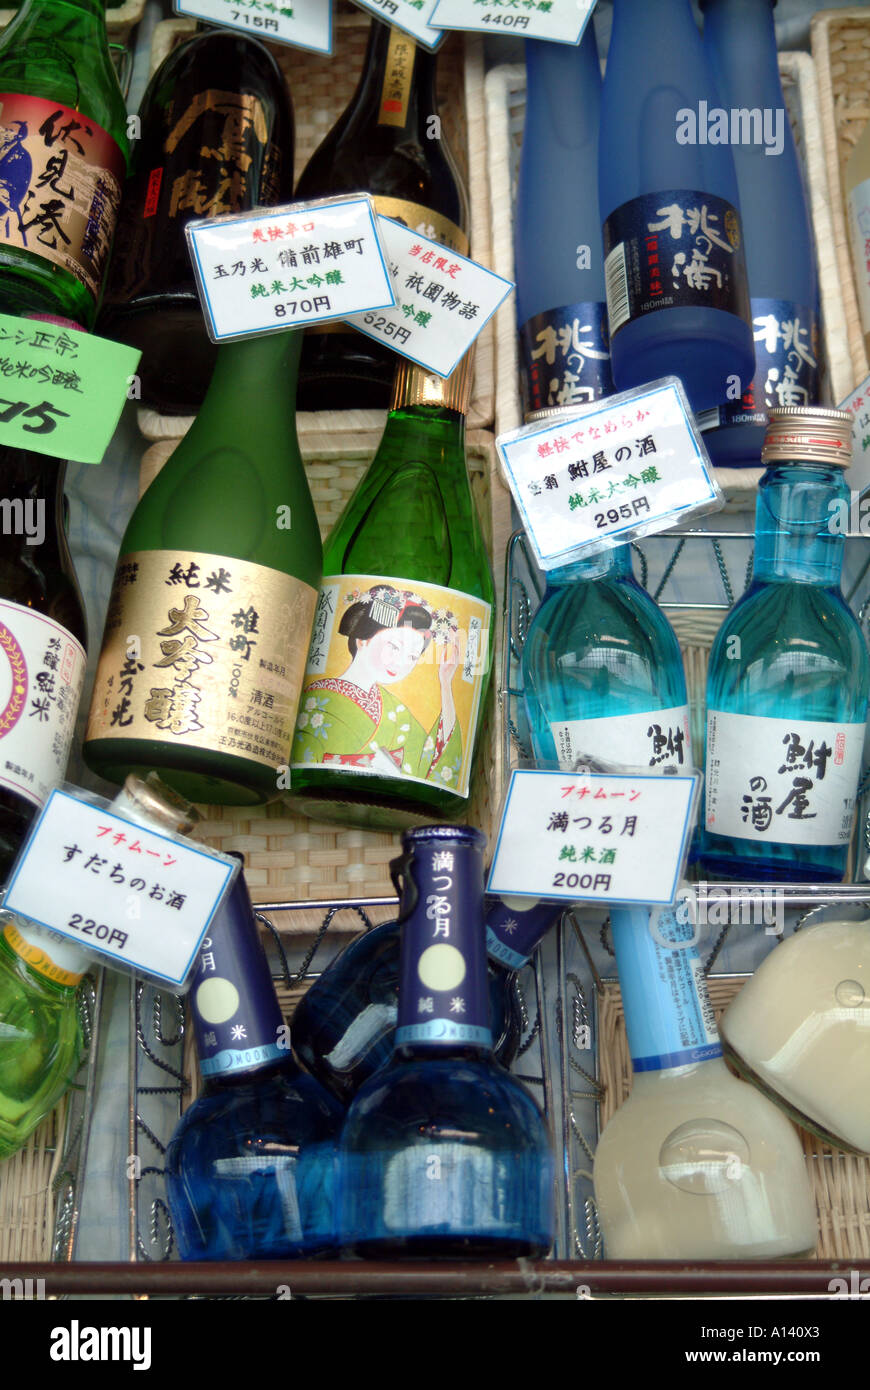 f717ad81e8dc Bottles of sake for sale in a shop Fushimi Kyoto Japan Stock Photo ...